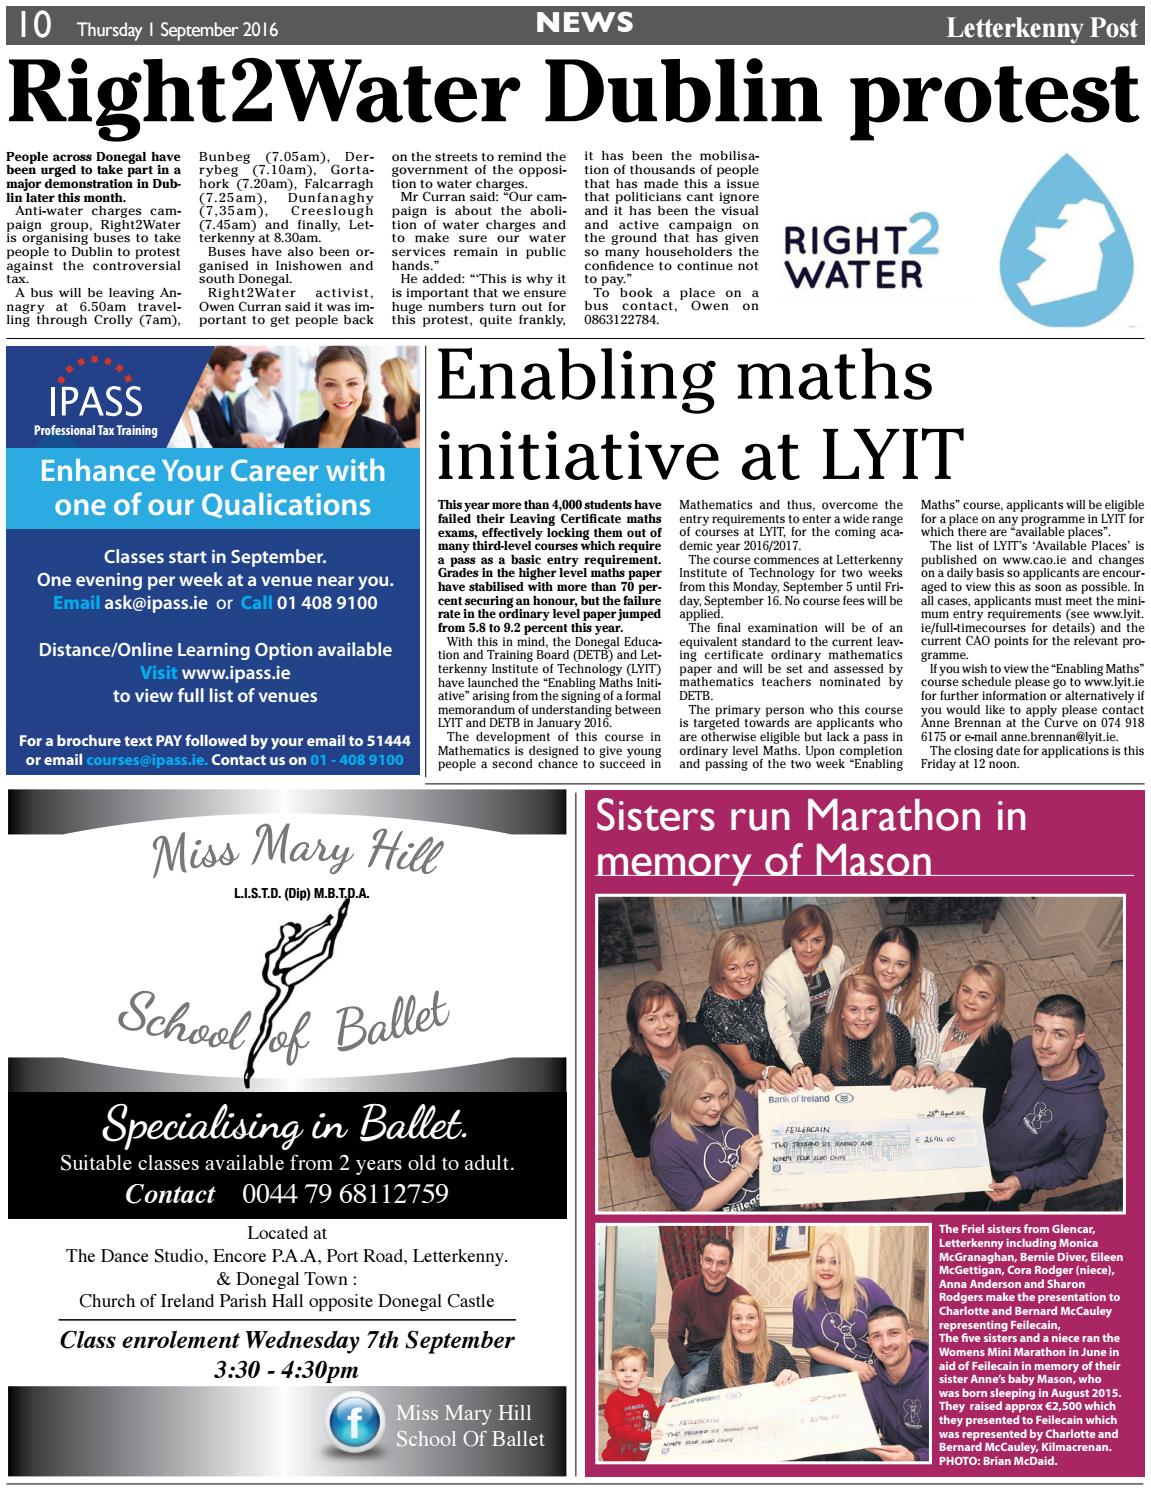 Letterkenny Post 01 09 16 By River Media Newspapers Issuu